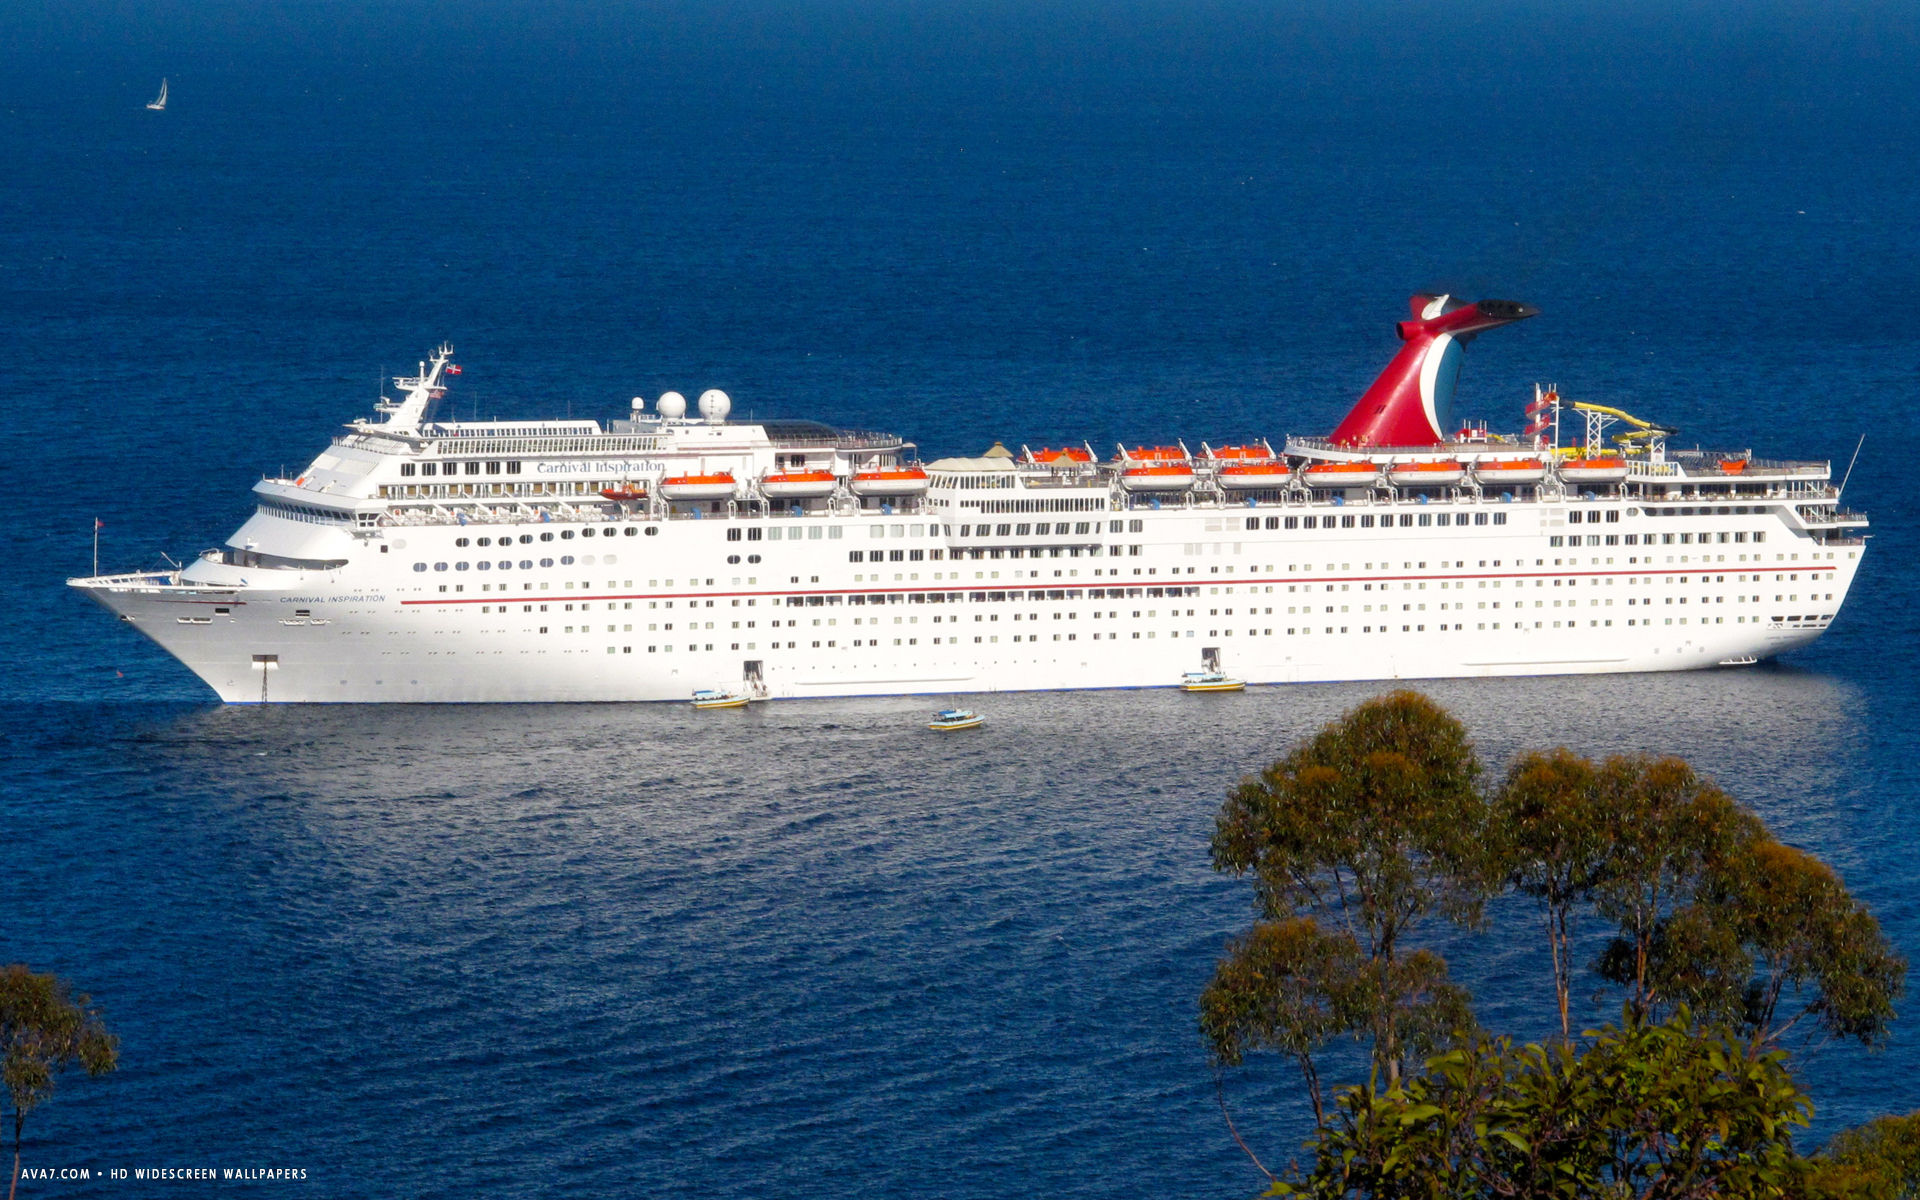 carnival inspiration cruise ship hd widescreen wallpaper cruise 1920x1200